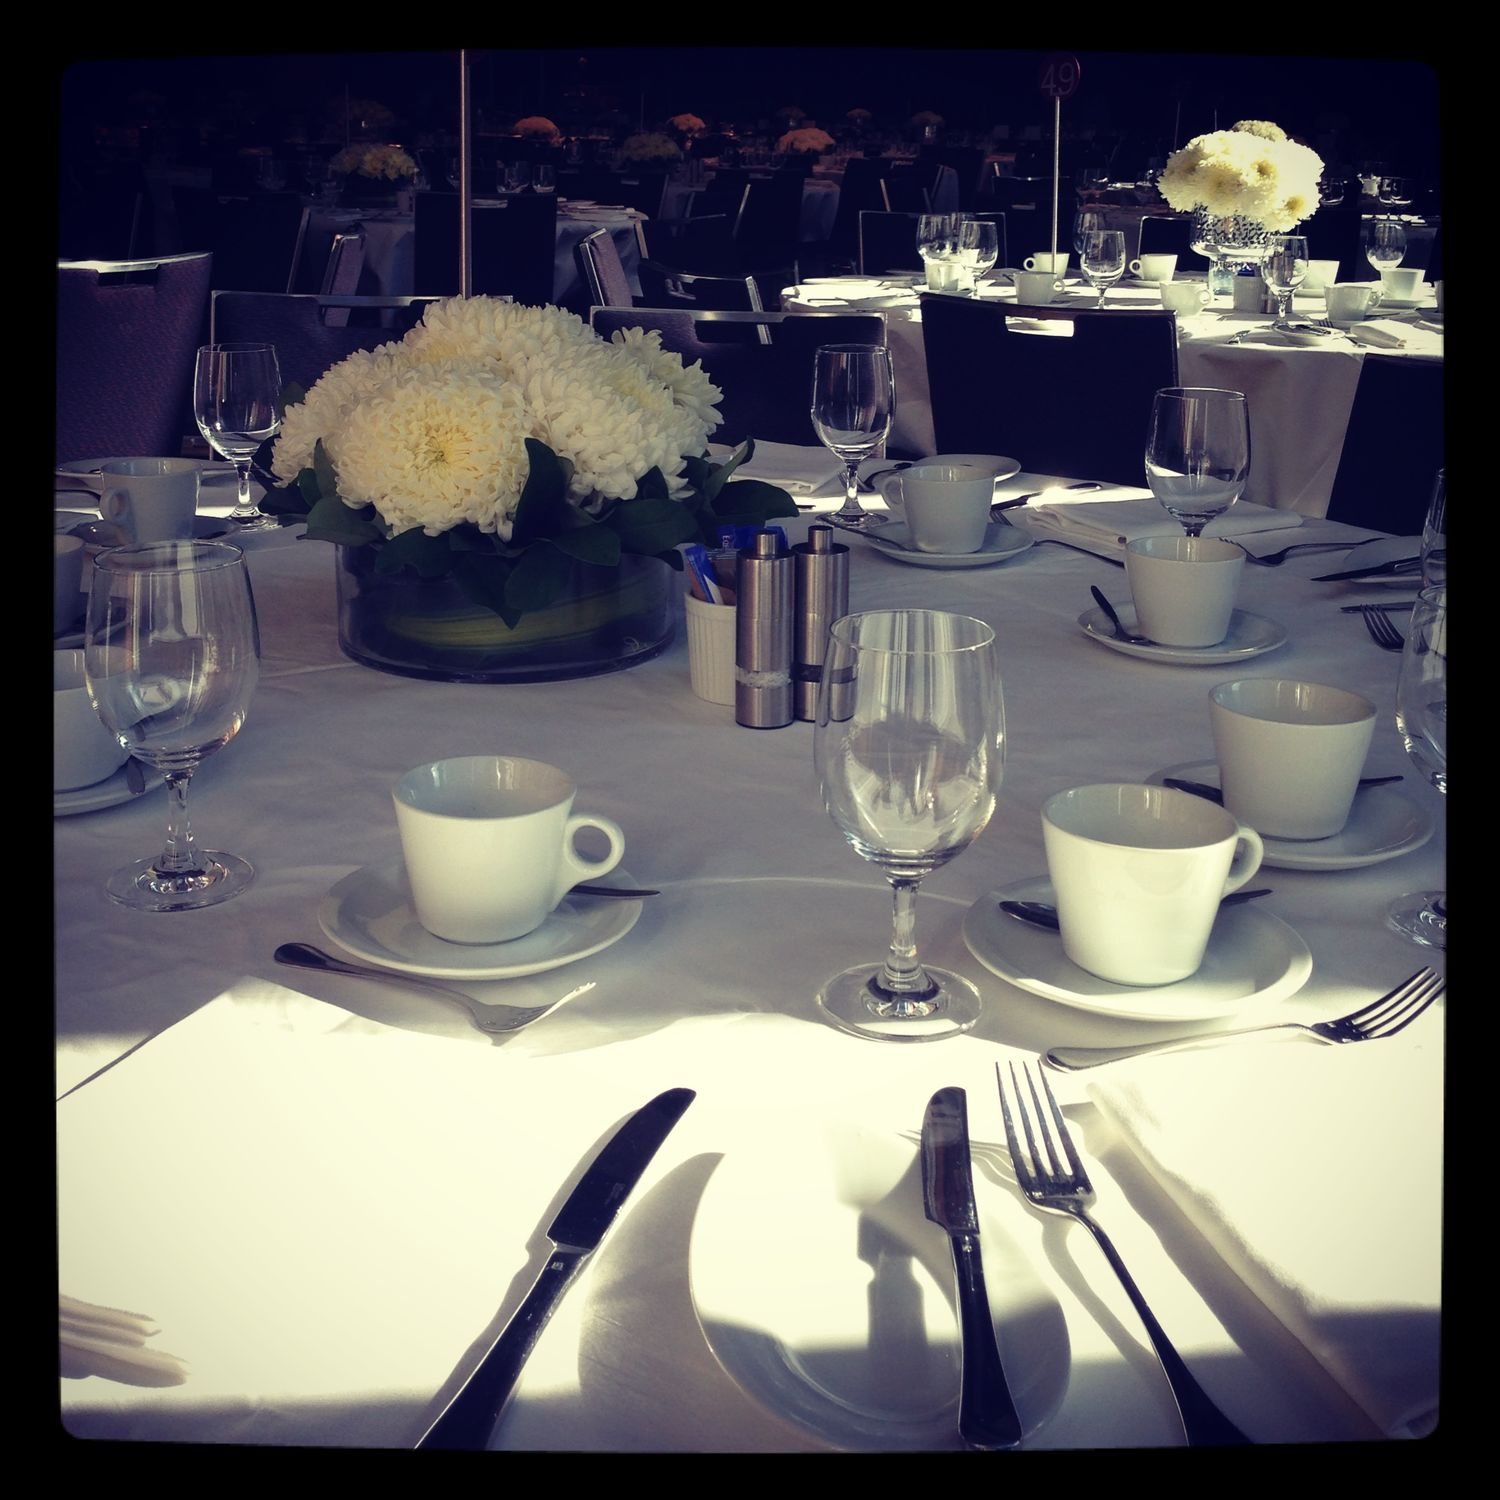 Mothers' luncheon table setting